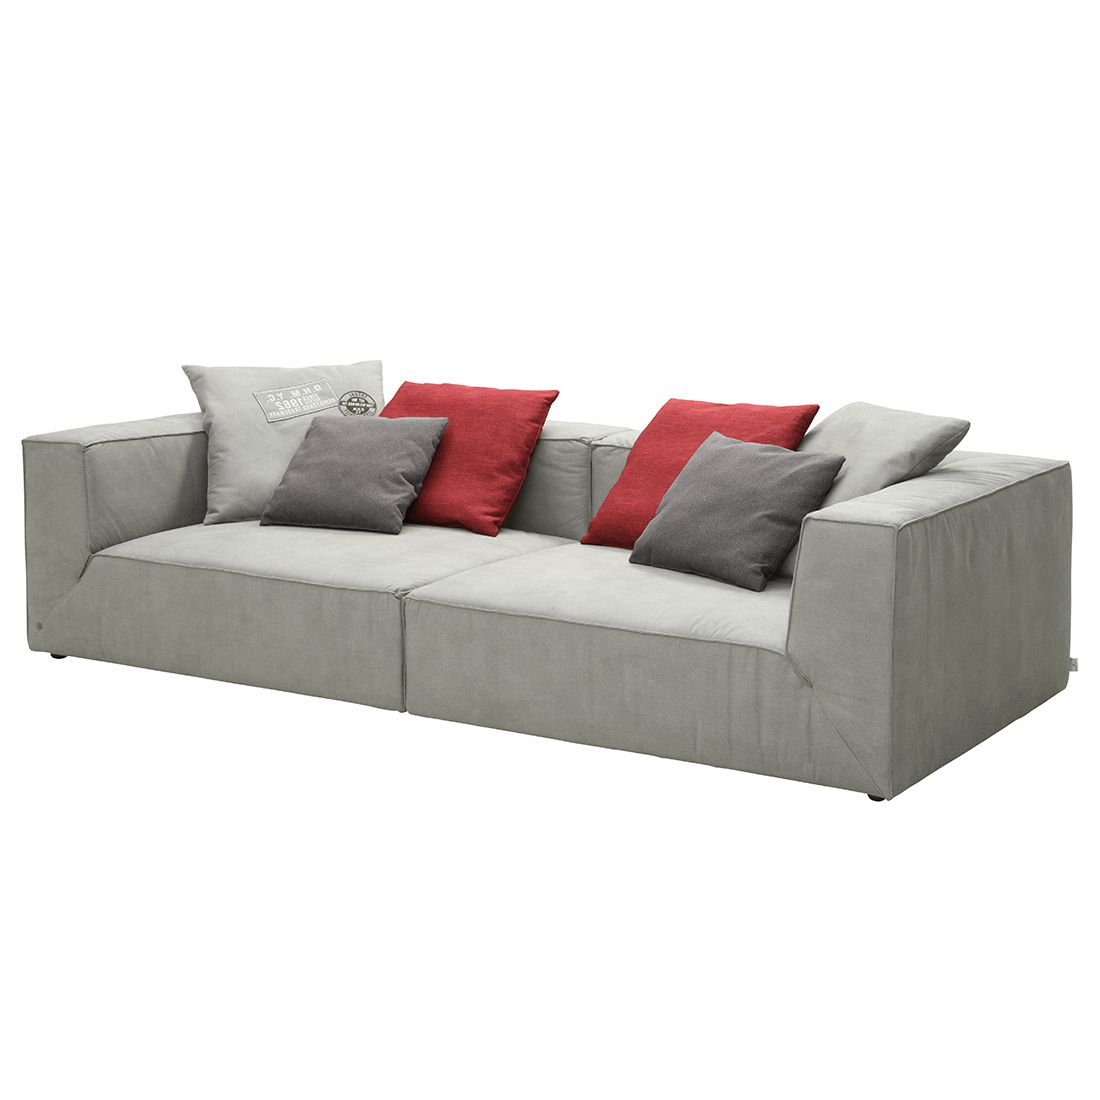 Bigsofa Big Cube - Antiklederoptik Grau - 6 Kissen - 300 x 122cm, Tom Tailor